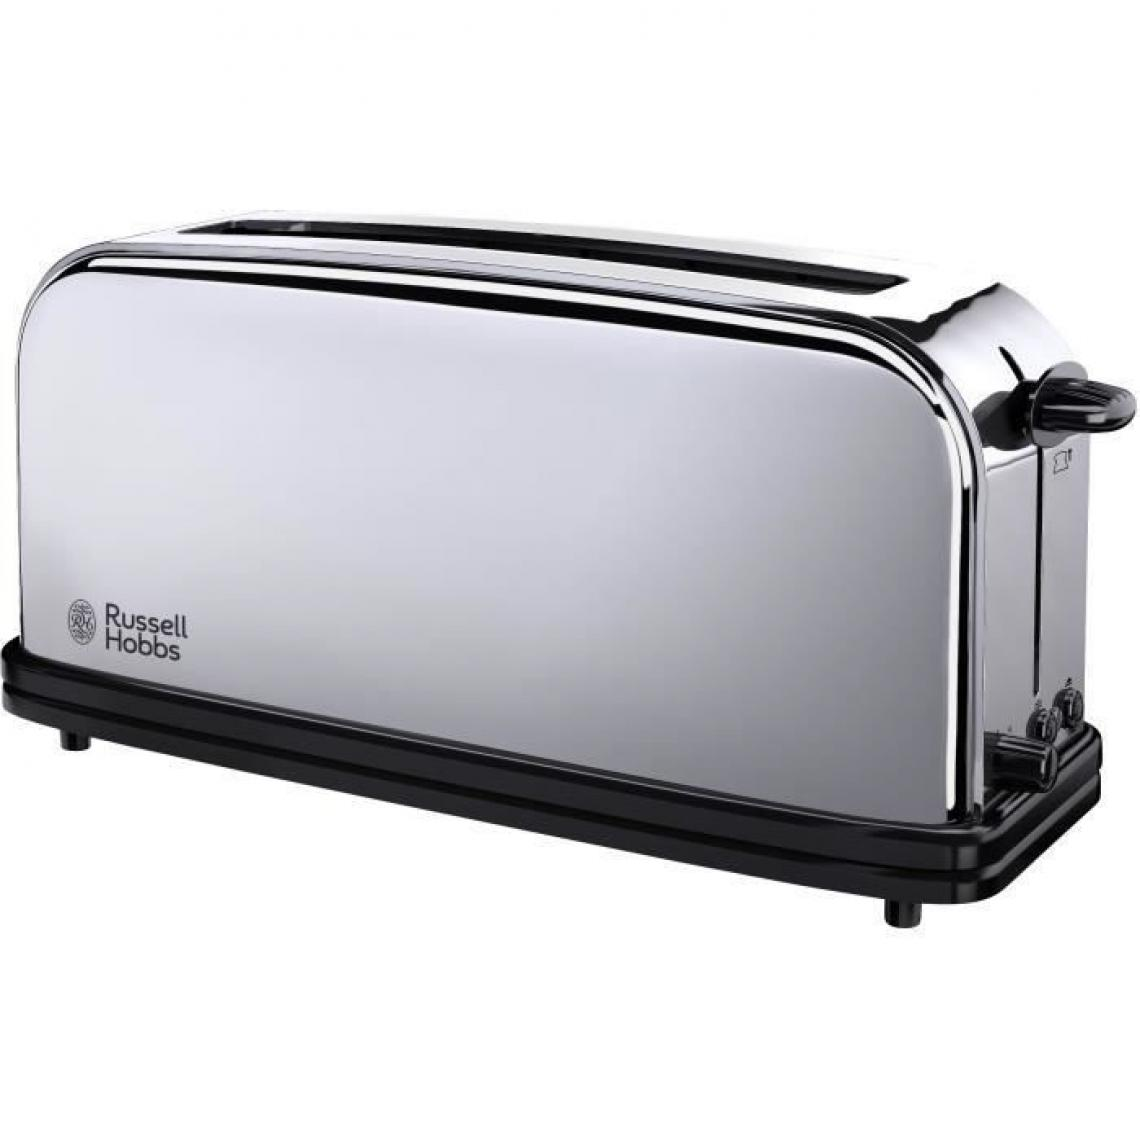 Russell Hobbs Russell Hobbs 23510-56 Toaster Grille Pain Victory 1000W, 1 Longue Fente, Design Retro, Chauffe Viennoiserie